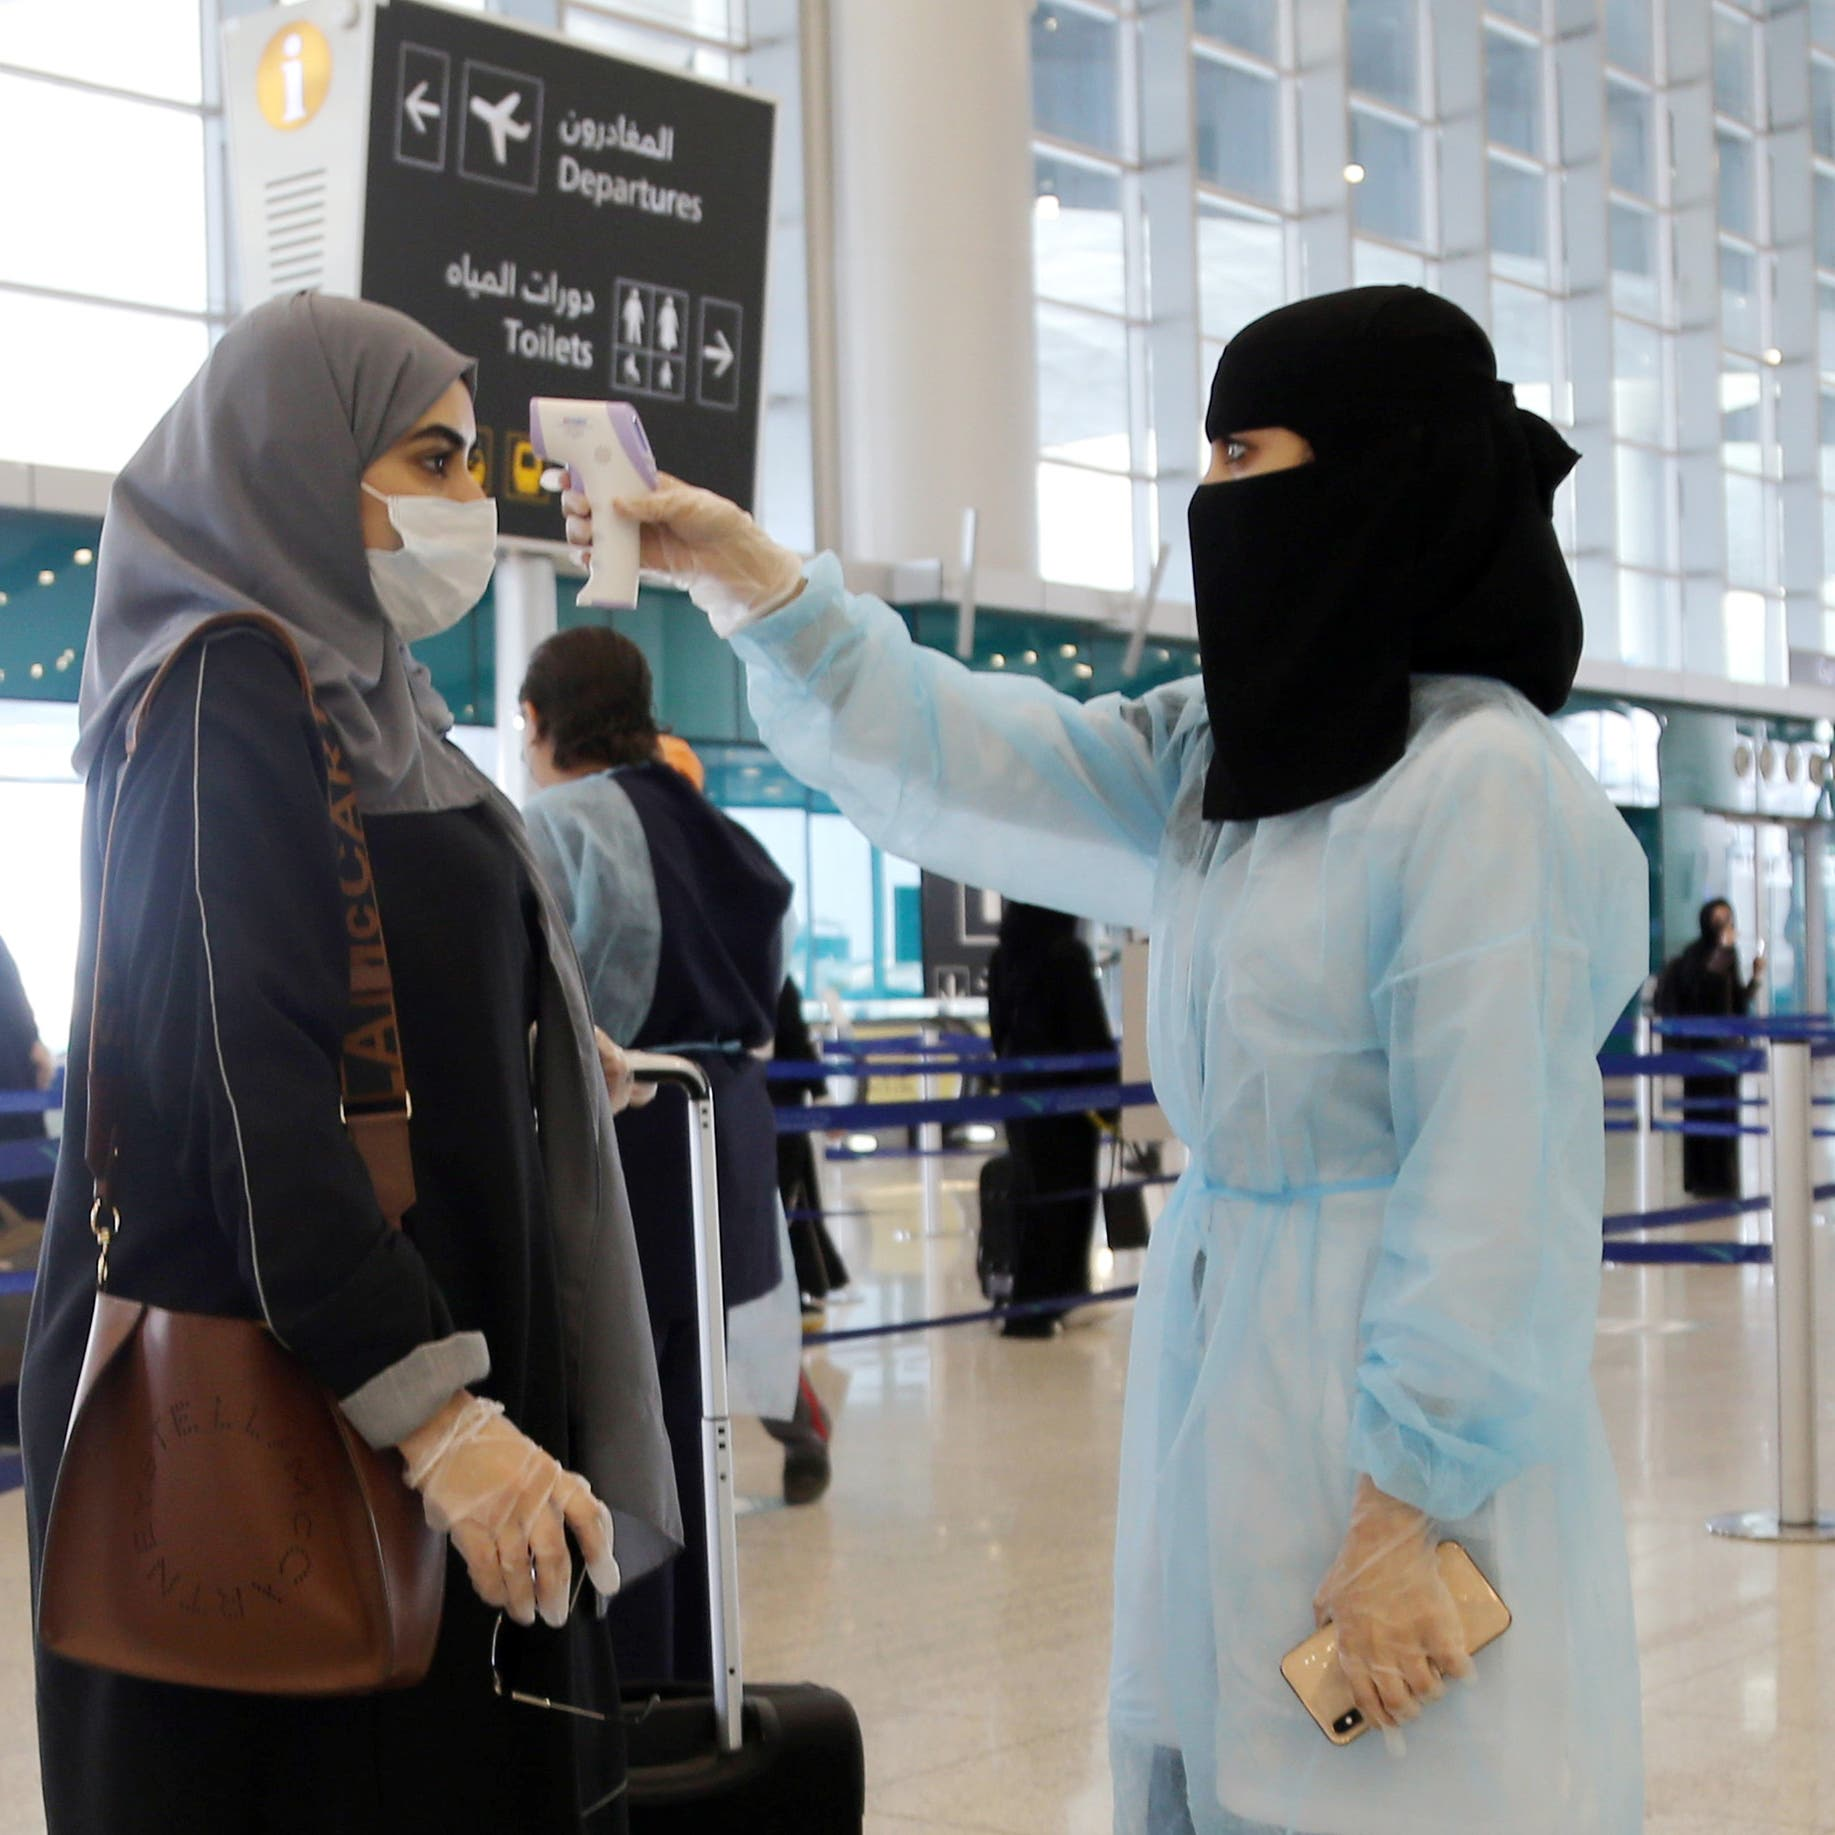 Saudi Arabia lifts COVID-19 travel ban to, from UAE, South Africa starting Sept. 8